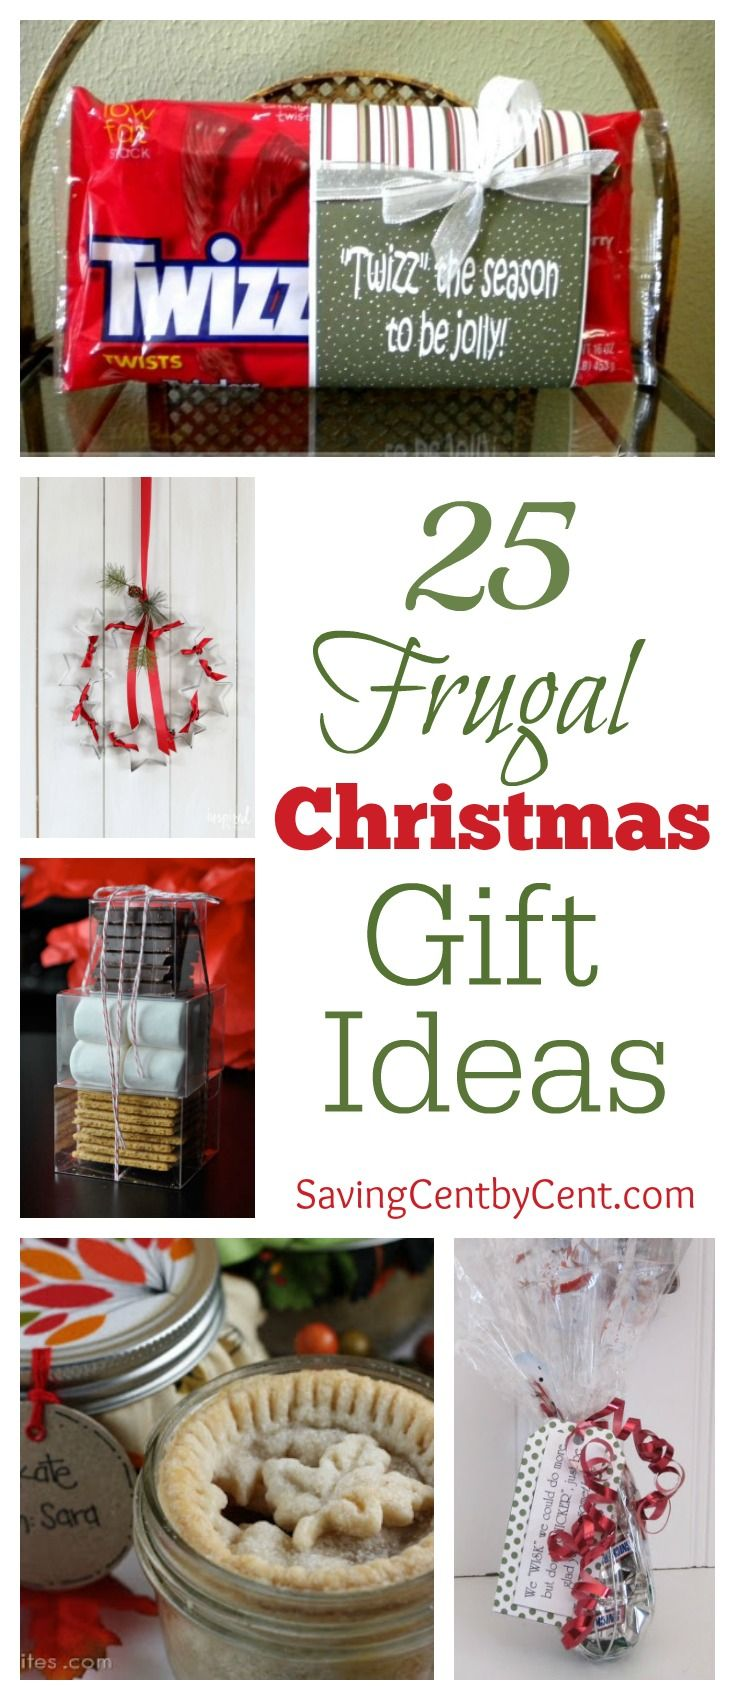 25 Frugal Christmas Gift Ideas (Part 1 Frugal christmas